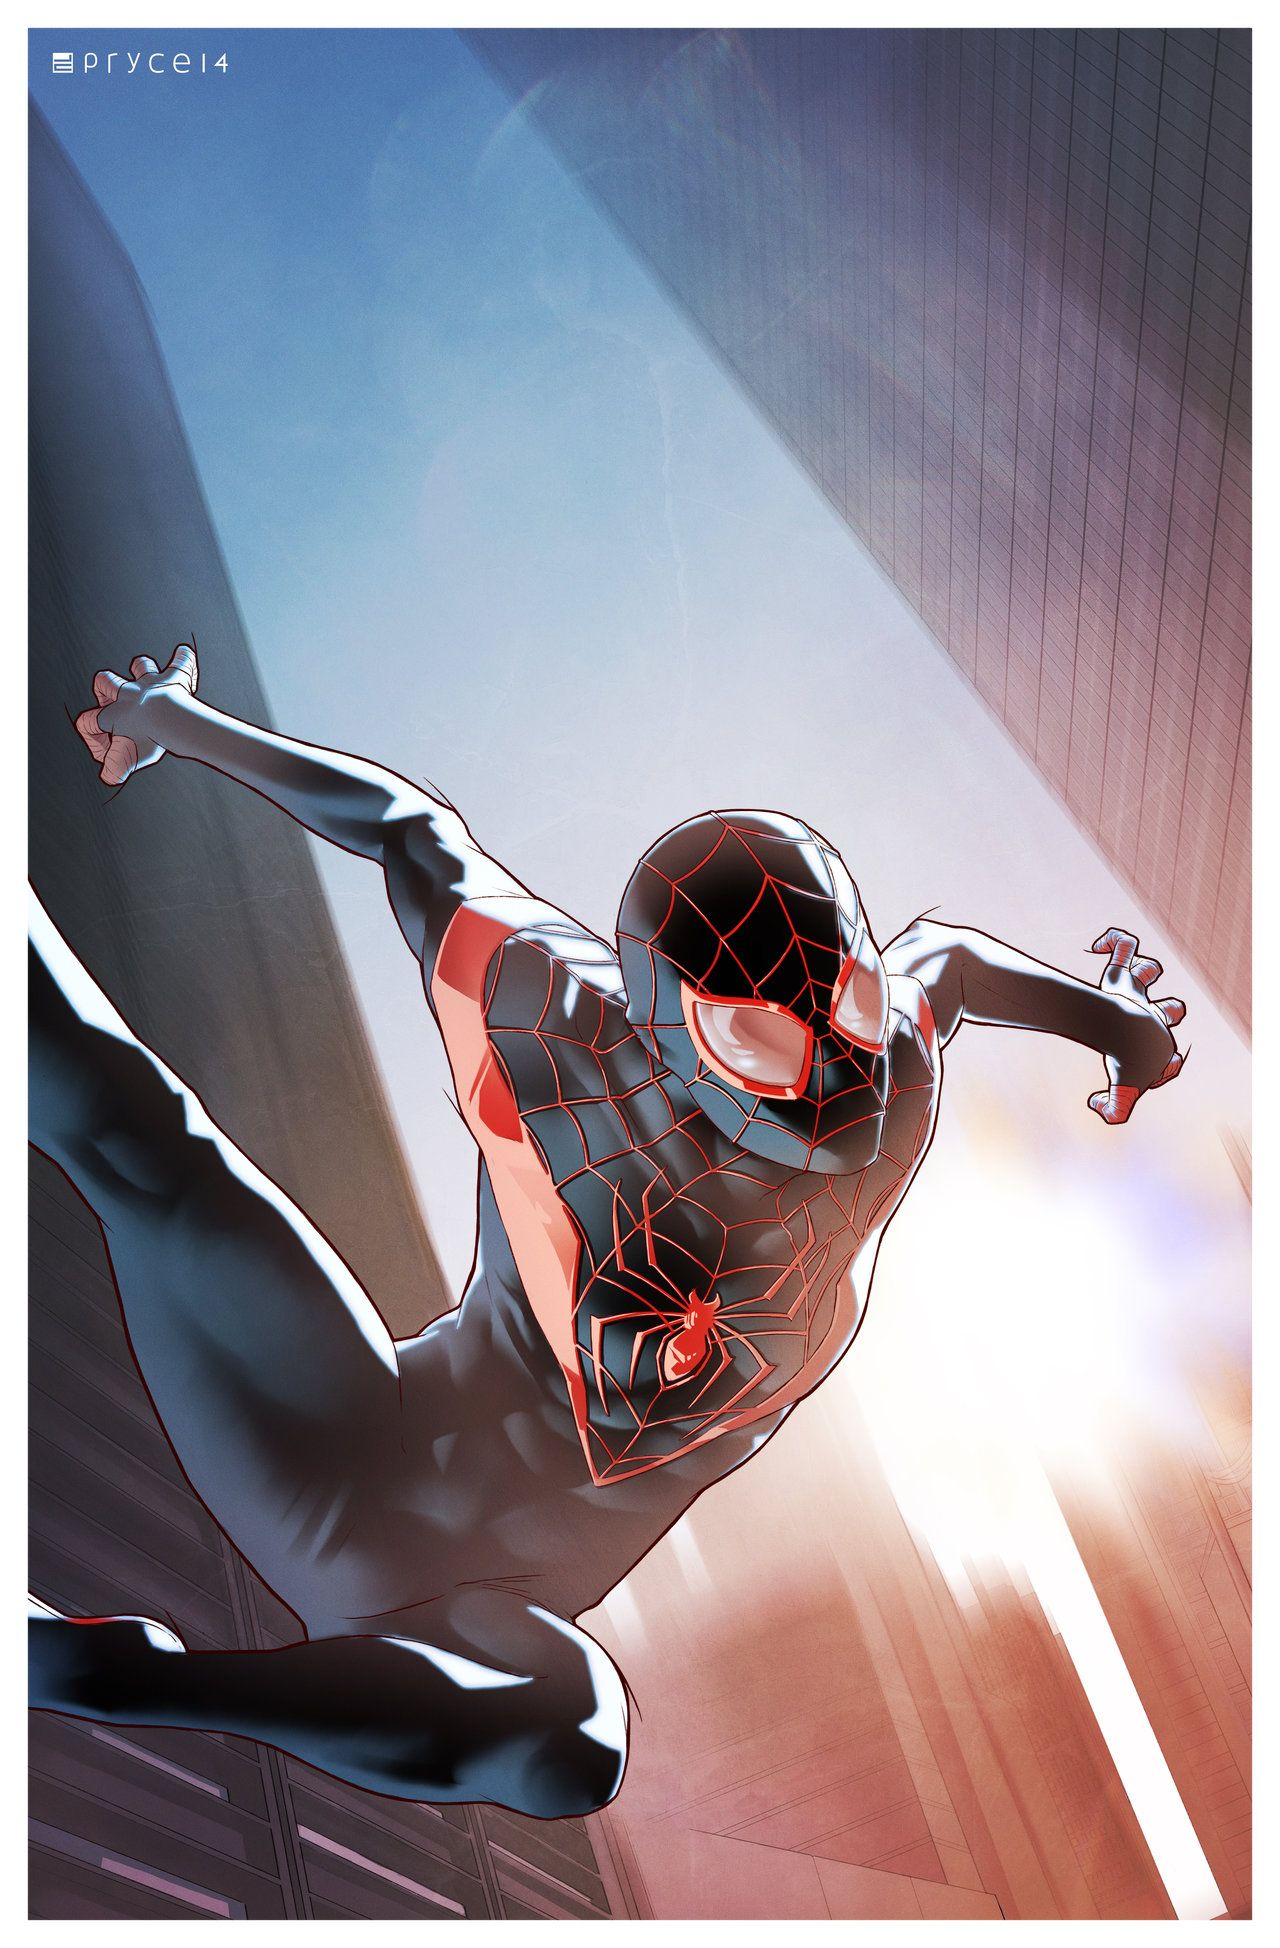 Spider-Man (Miles Morales) by Jamal Campbell